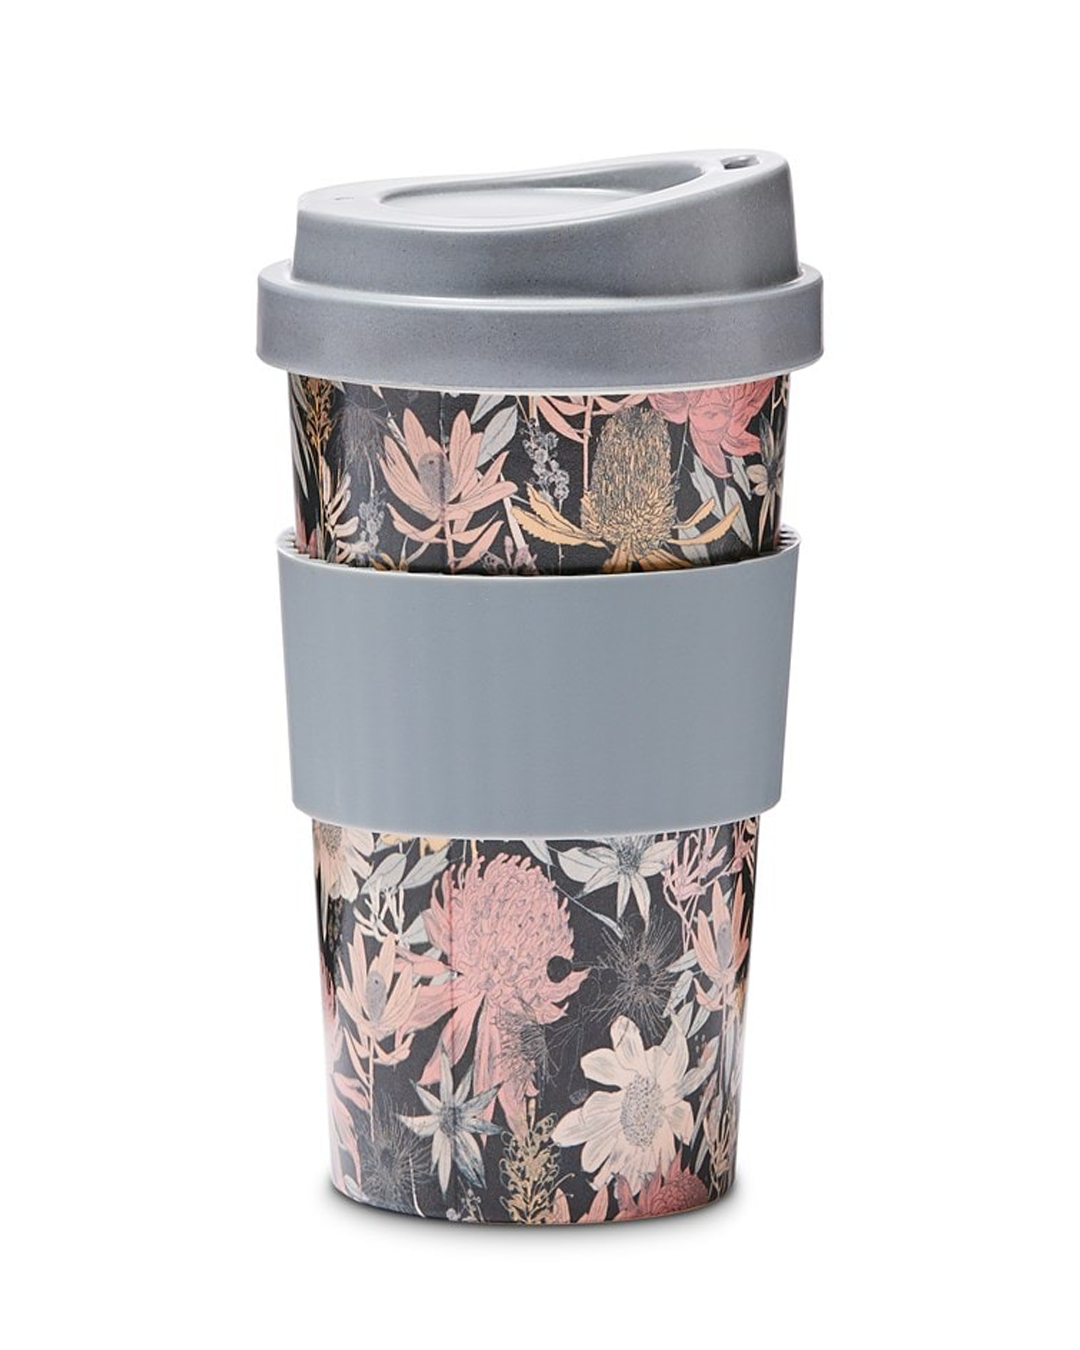 A blue and purple reusable coffee cup with patterns of flowers.